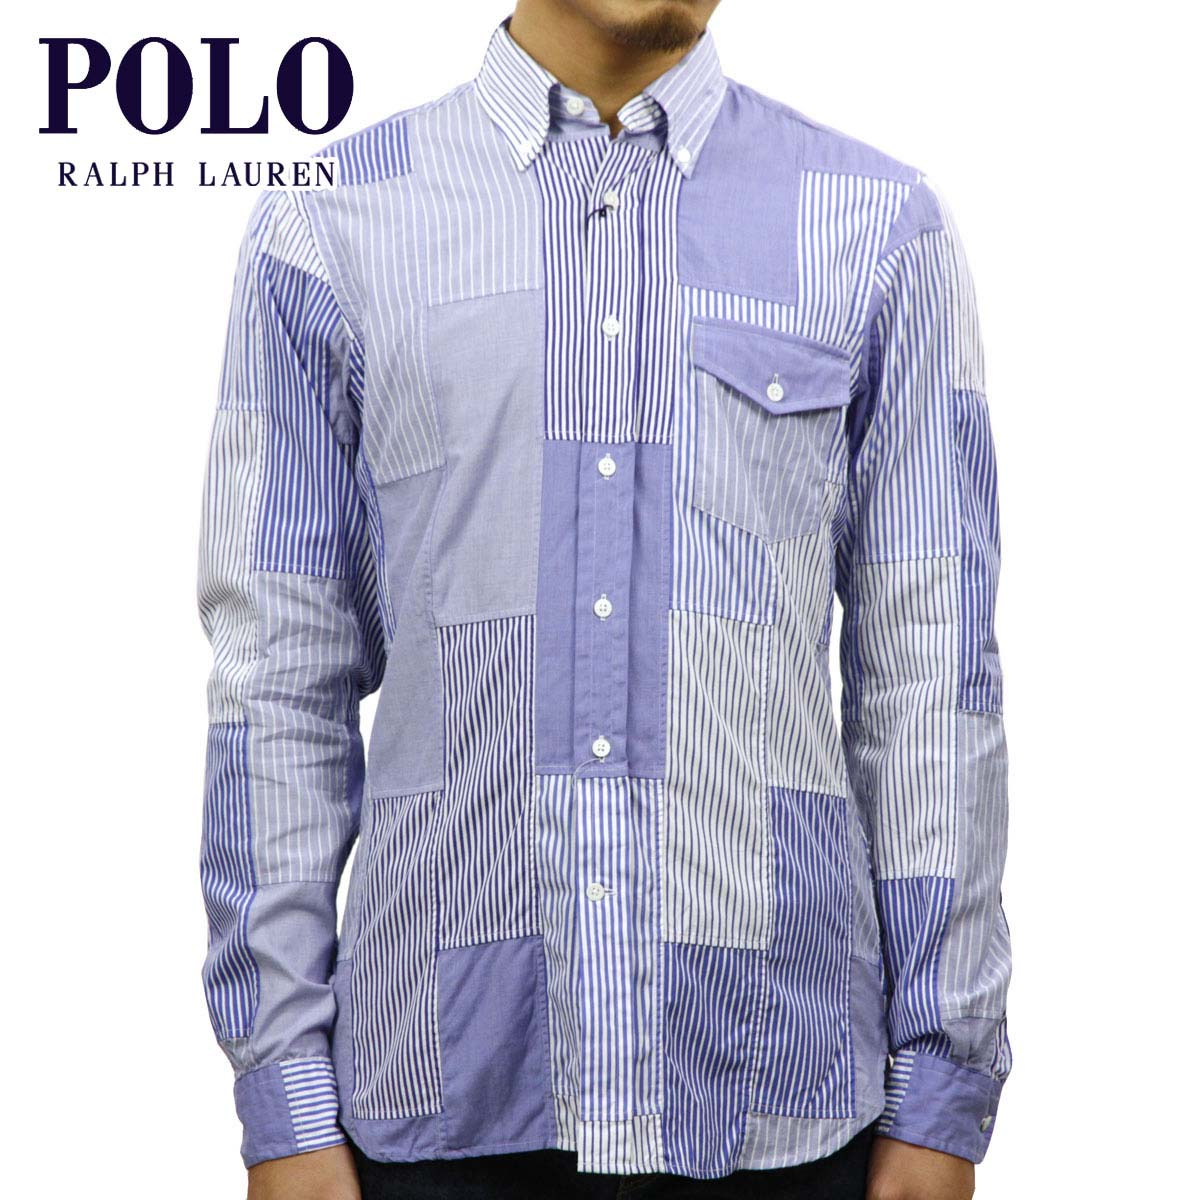 89df1a9b Polo Ralph Lauren POLO RALPH LAUREN regular article men patchwork long  sleeves button-down shirt ...